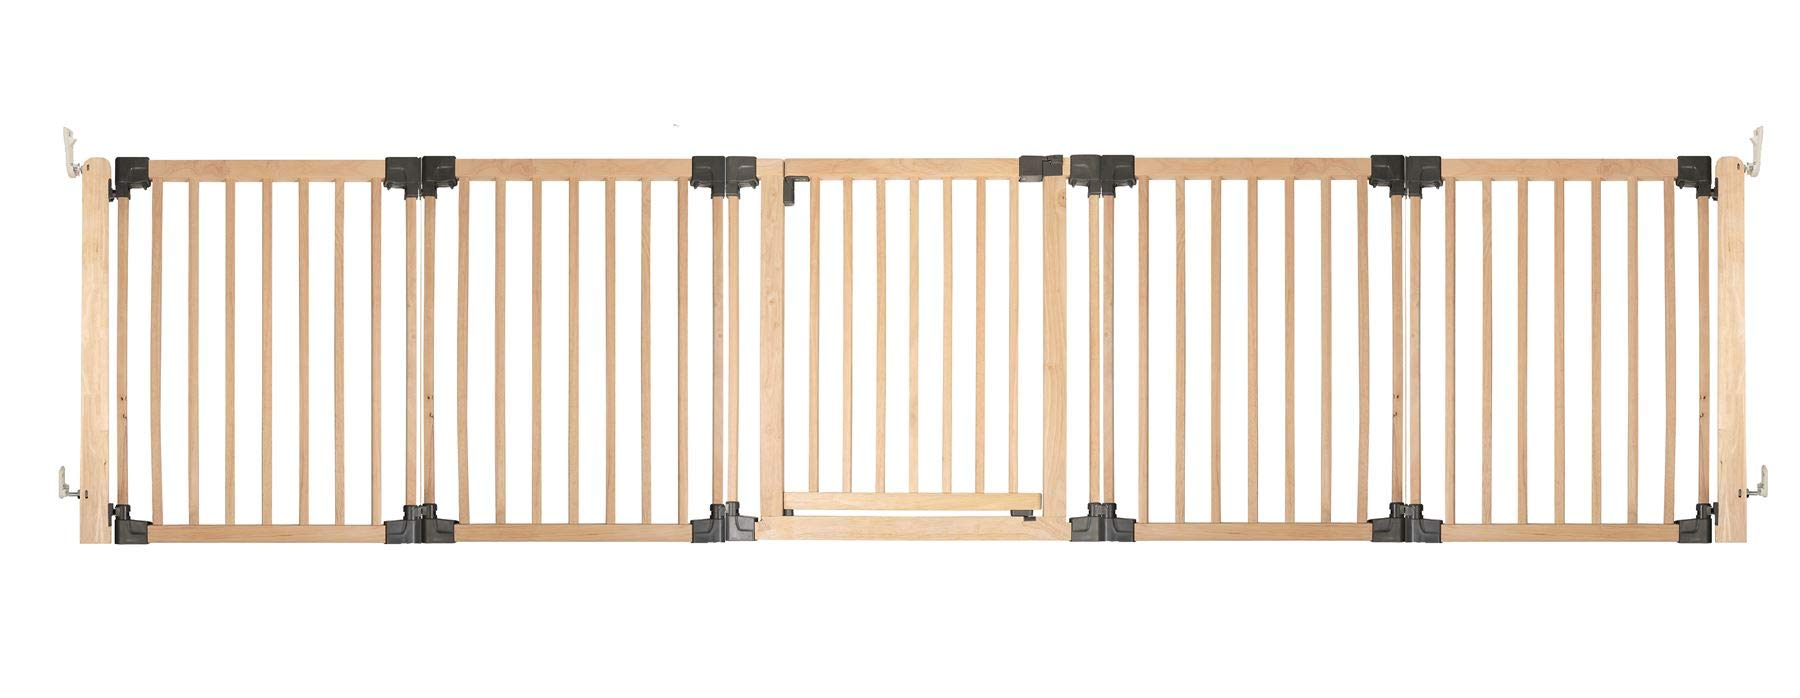 Safetots Wooden Multi Panel Room Divider Up to 336.5CM Safetots Made from premium grade wood designed to compliment all home interiors Each panel can be angled as required to make custom fit room dividing configurations This configuration comes complete with a wall mounting kit, one 80cm gate panel and four 60cm extension panels 1